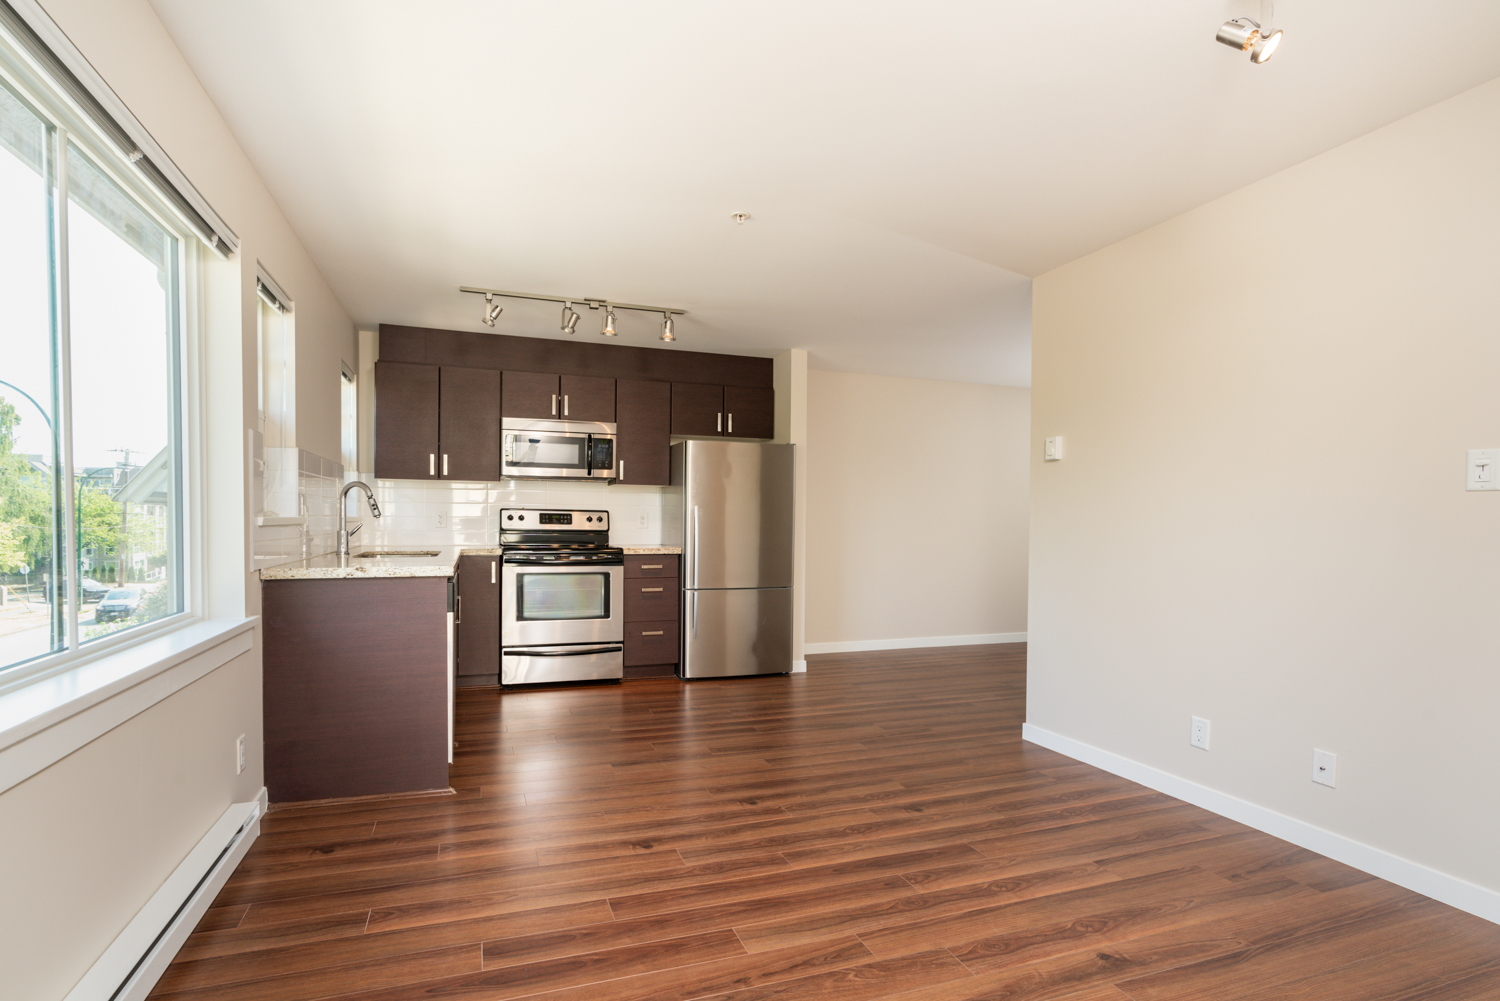 Kitchen & Living Room - Cambie - 930 West 16th Avenue, Vancouver, BC